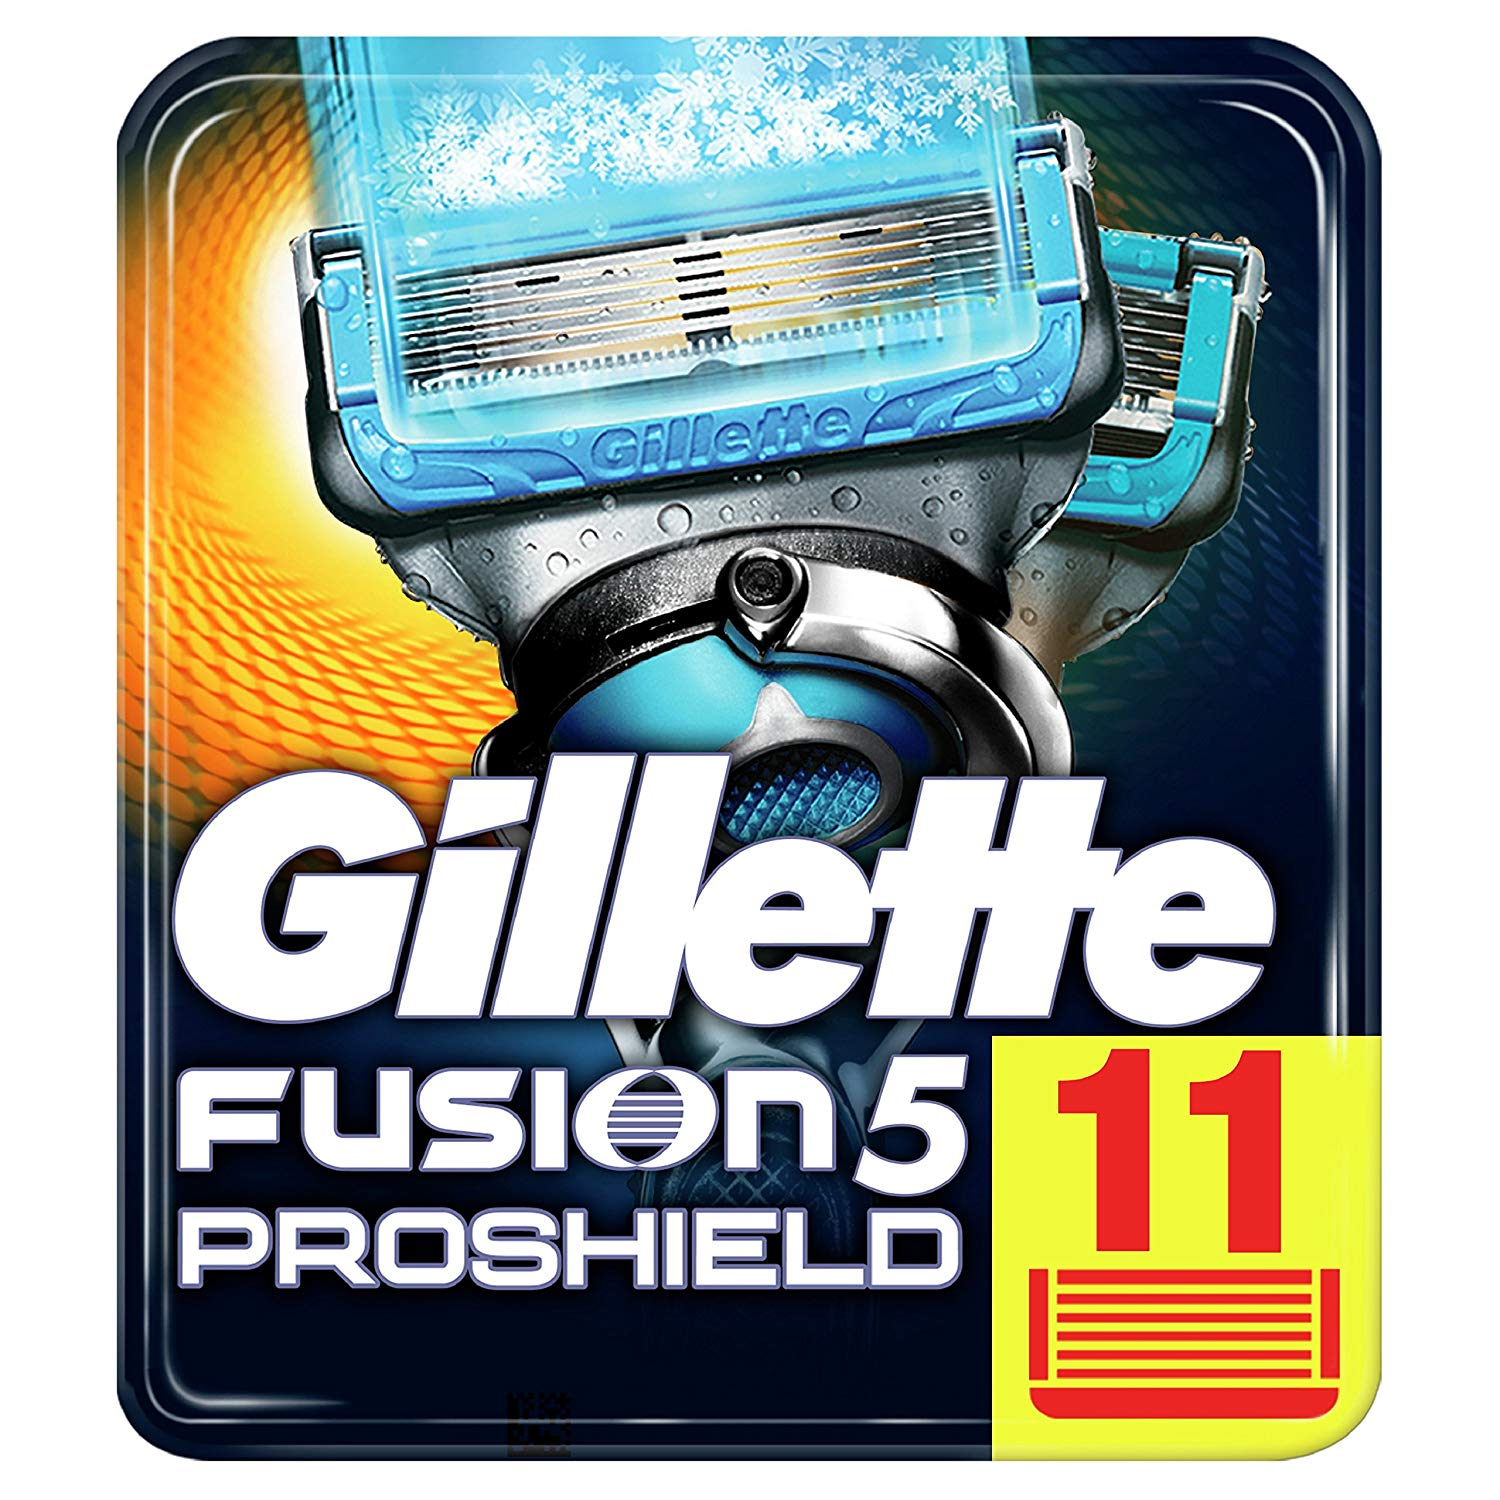 Gillette Fusion 5 Rasierklingen amazon